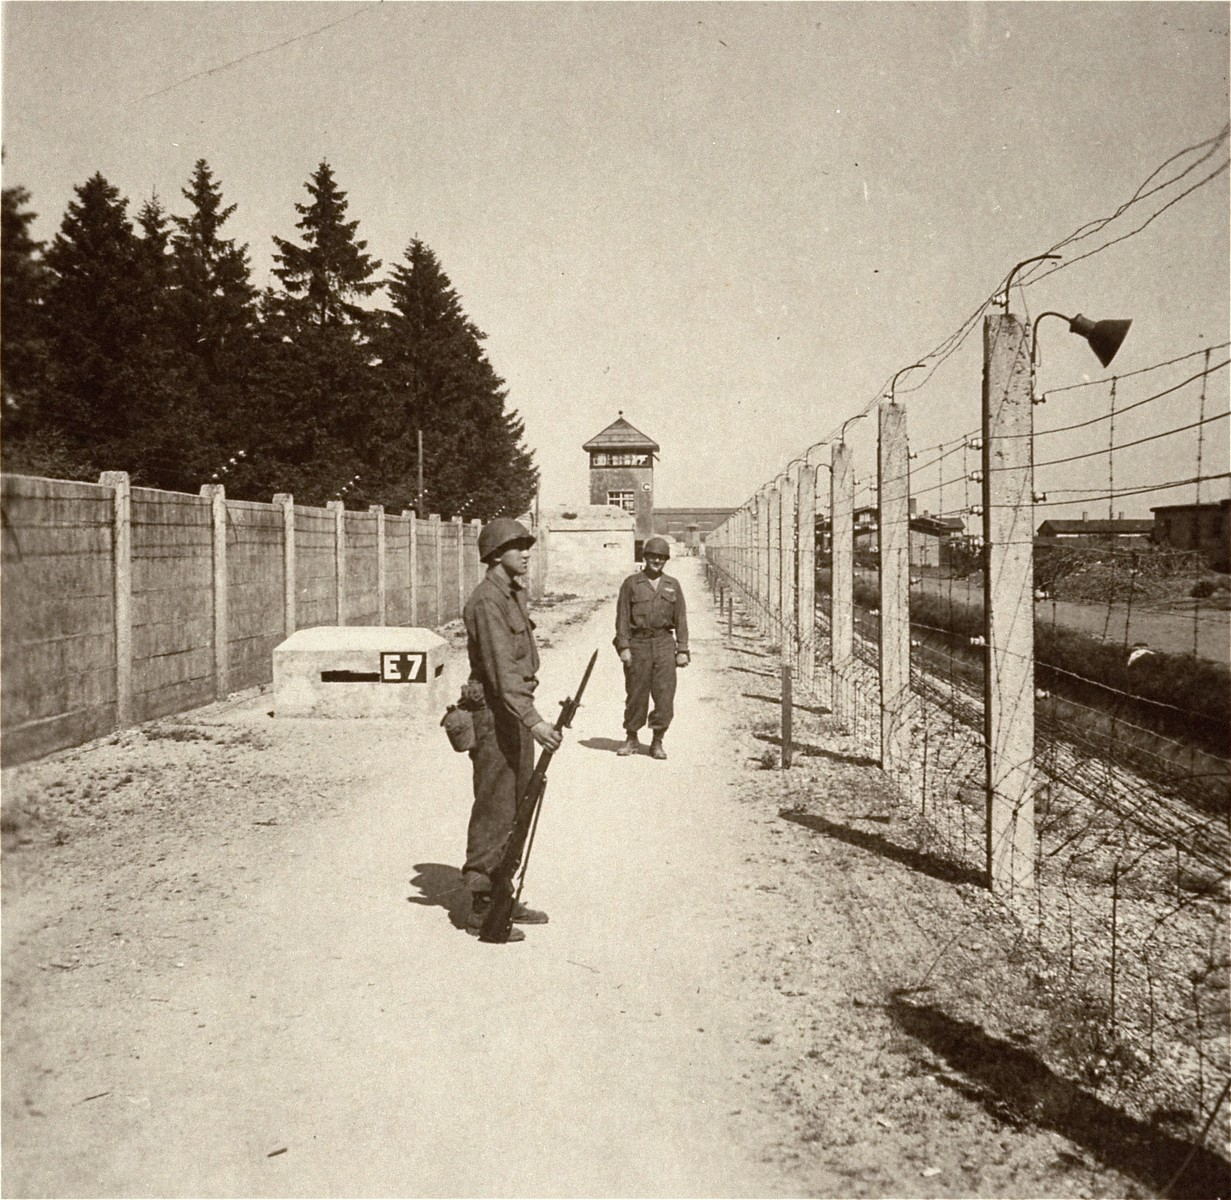 American liberators stand guard at Dachau.